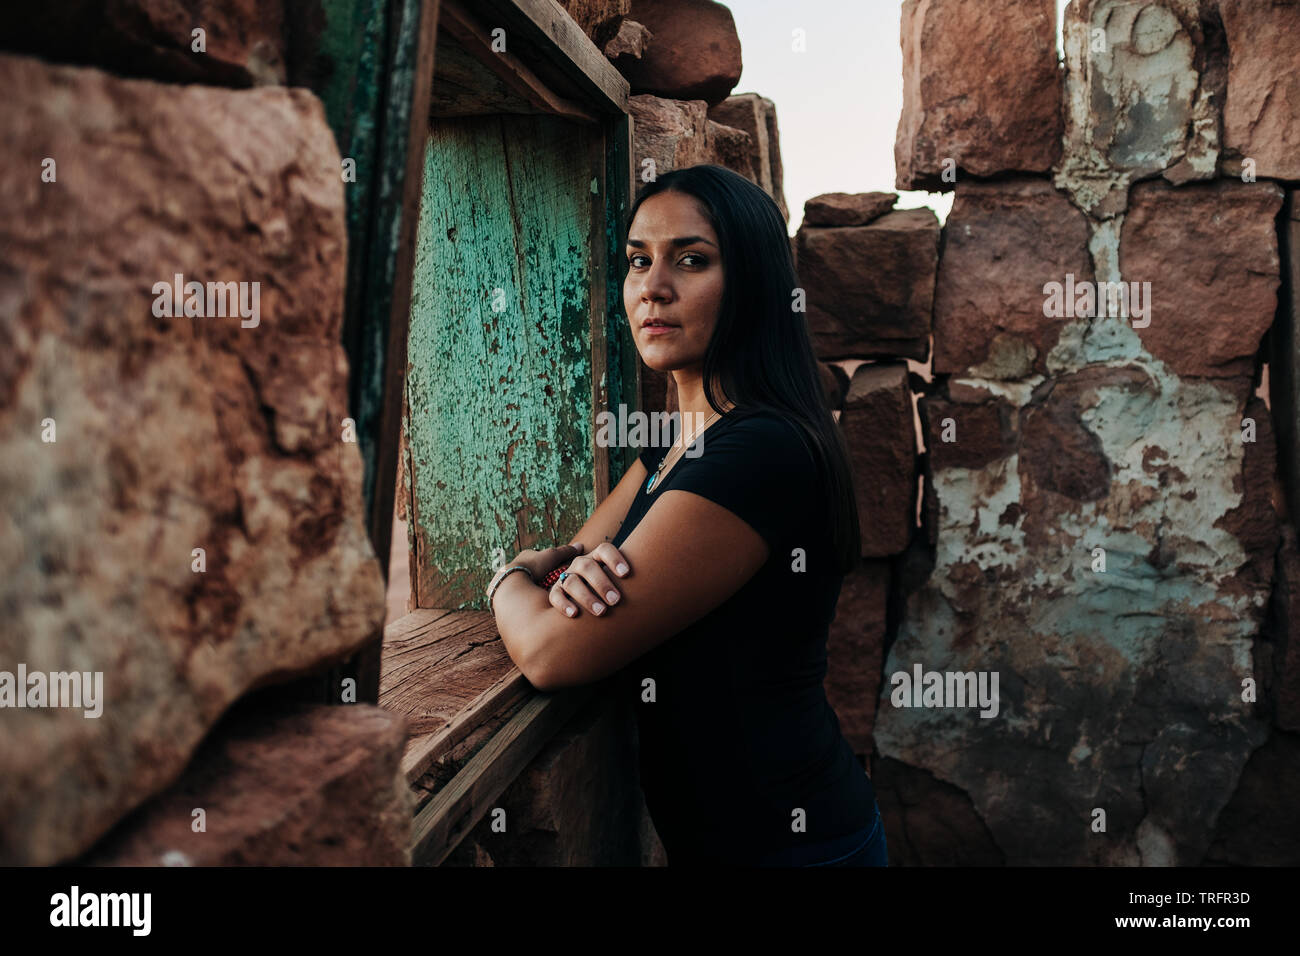 A Navajo Woman Models Her Modern Native American Outfit On The Navajo Reservation In Northern Arizona She Wears Turquoise Jewelry And A Cowboy Hat Stock Photo Alamy